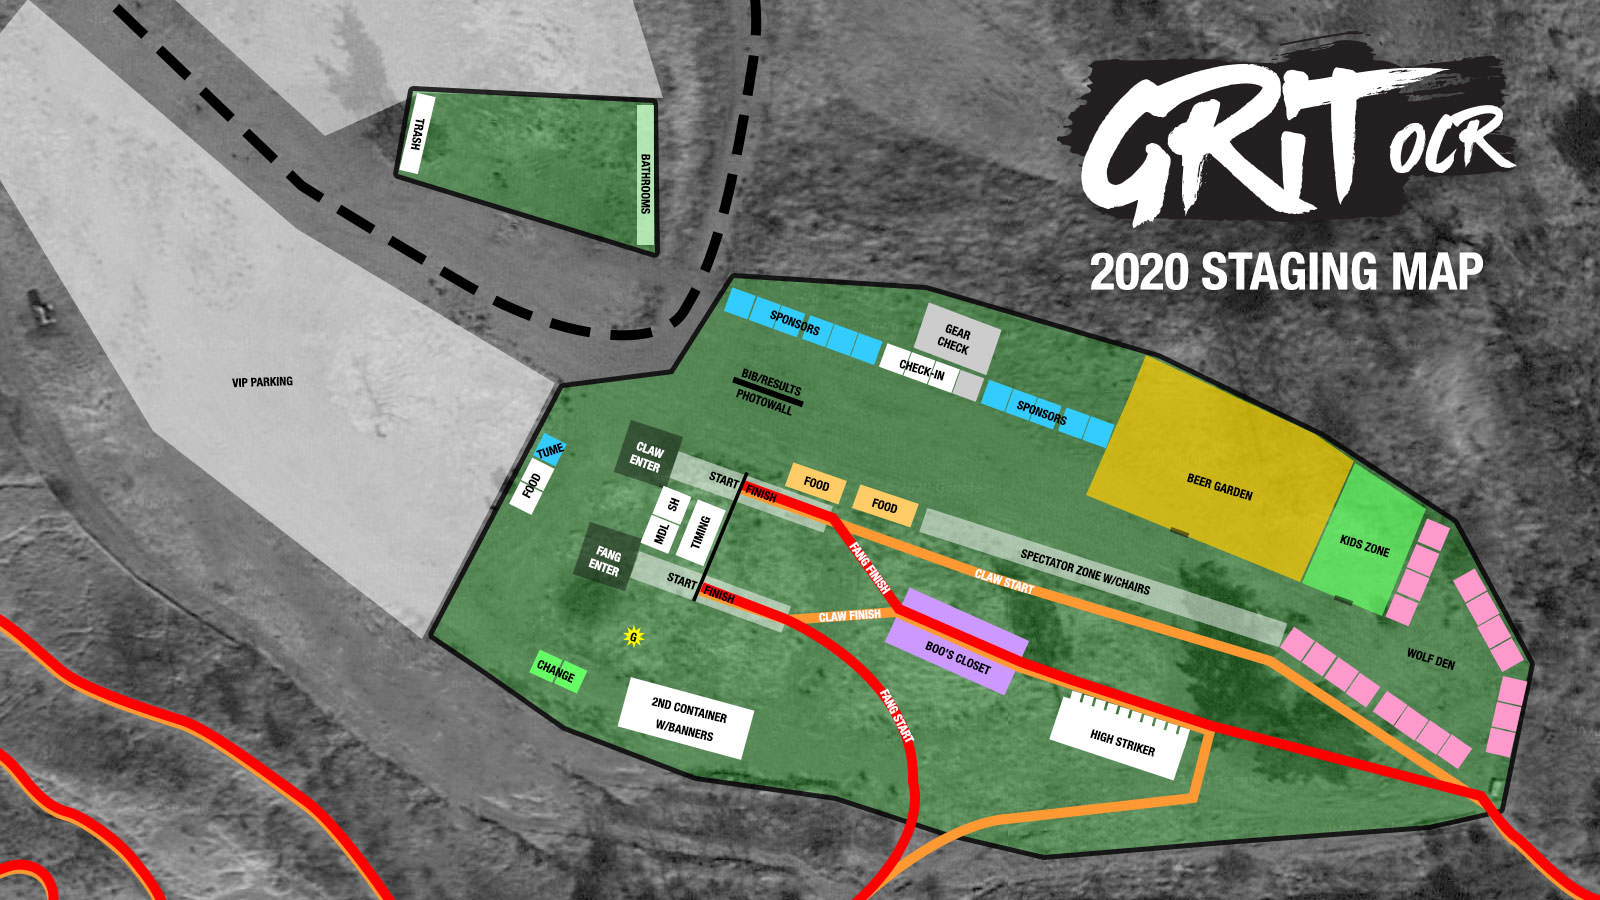 2020 Staging Map